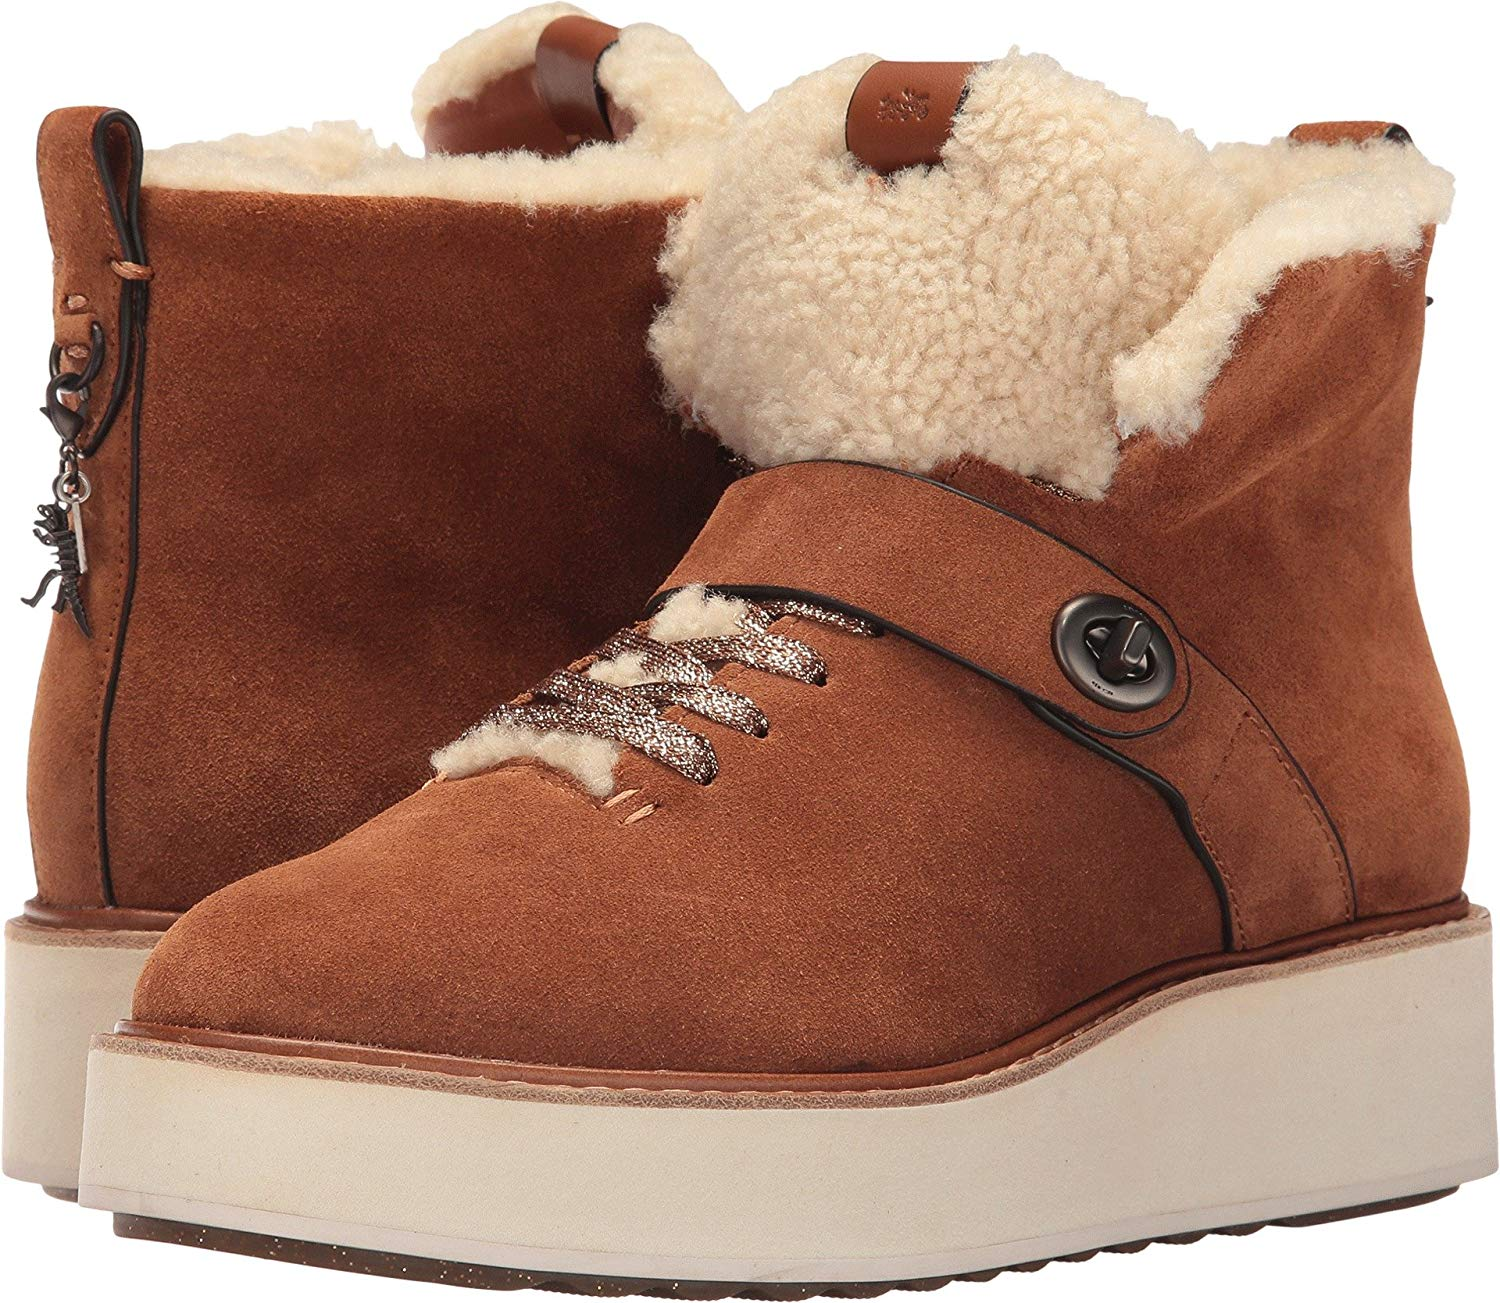 810669ebb7eb1a Coach Womens Urban Hiker Suede Closed Toe Ankle Cold Weather Boots ...